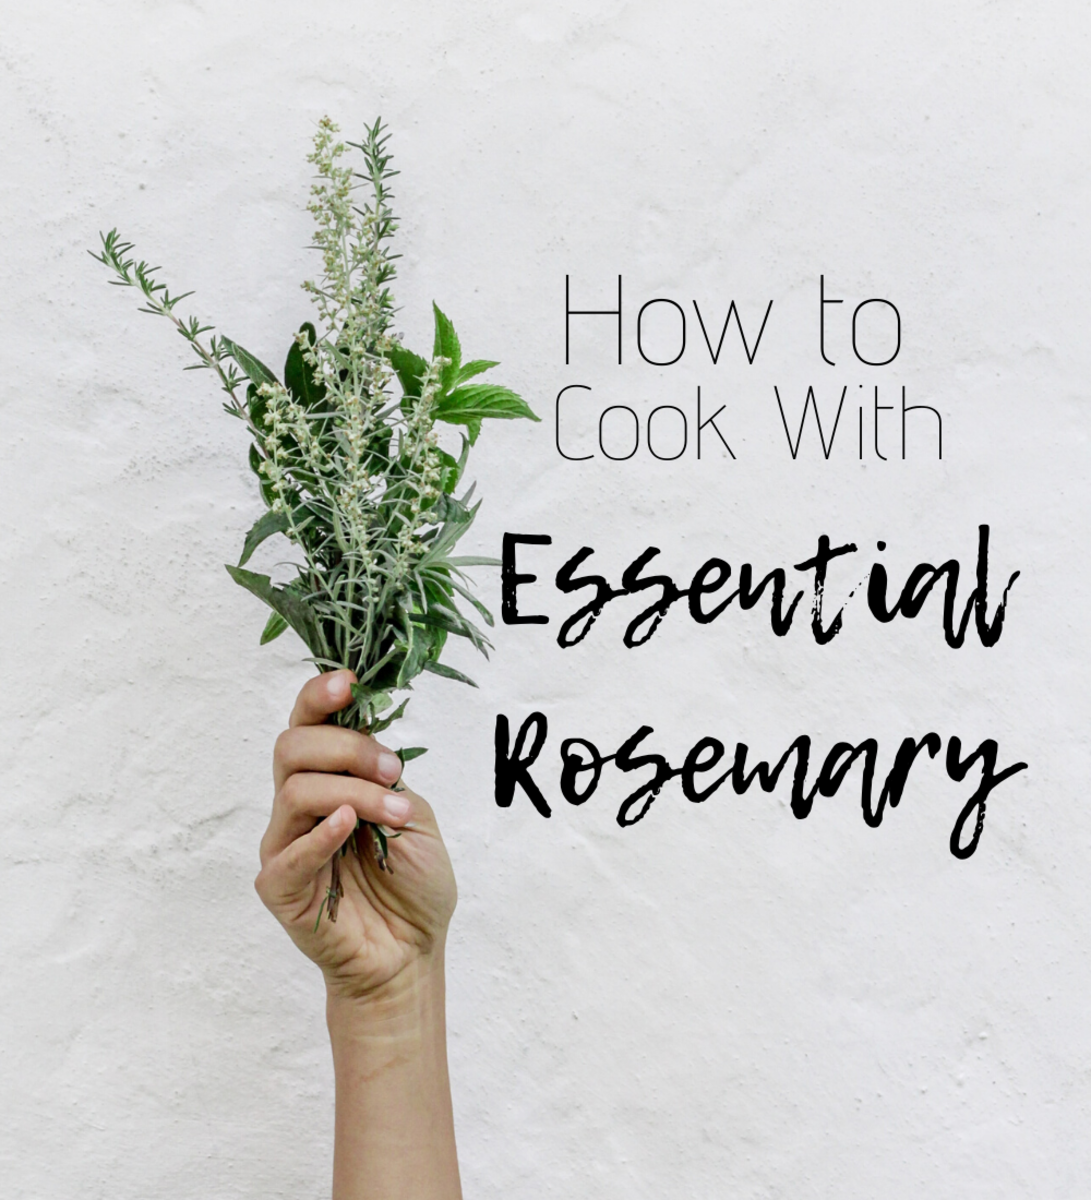 Cook Calming Food With Rosemary